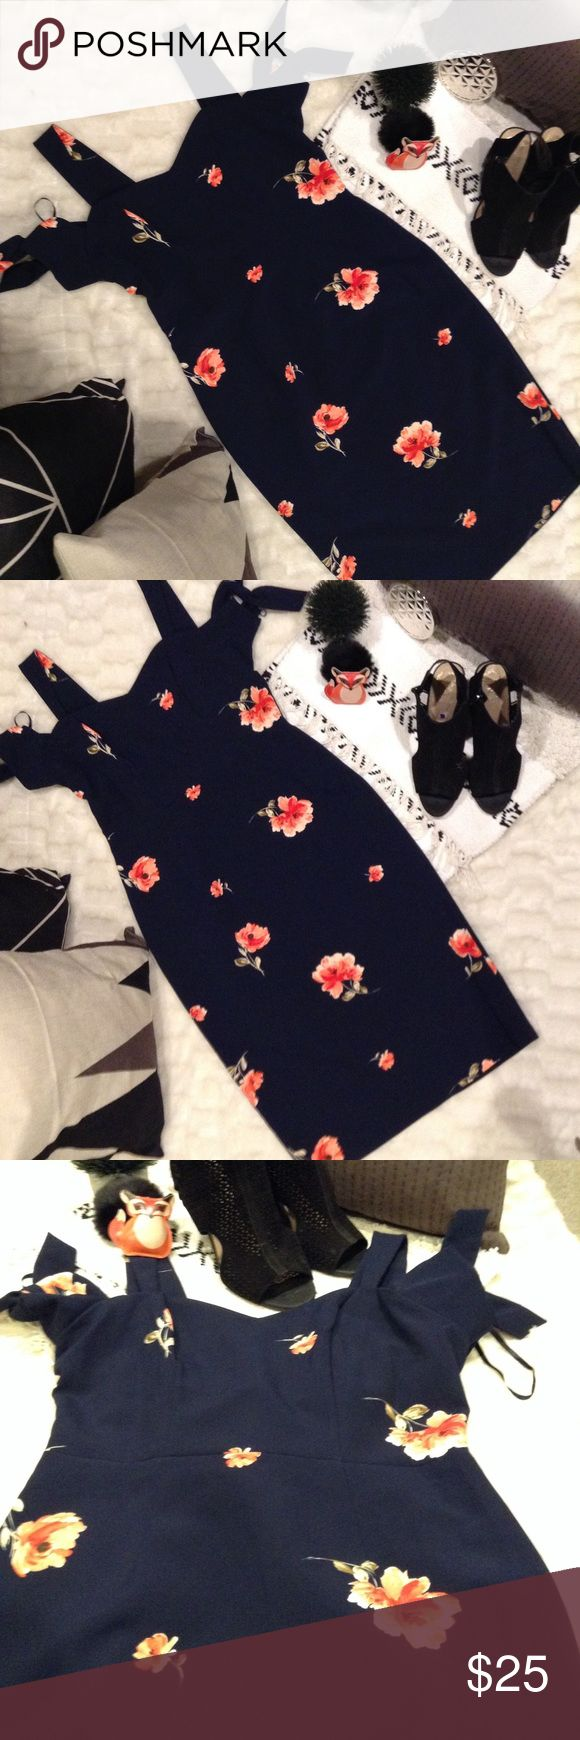 Beyond Ashley graham navy dress sz 8 Navy blue long fitted dress size 8 large pink florals. Structured dress with off the shoulder ties. Ashley Graham Dresses Midi